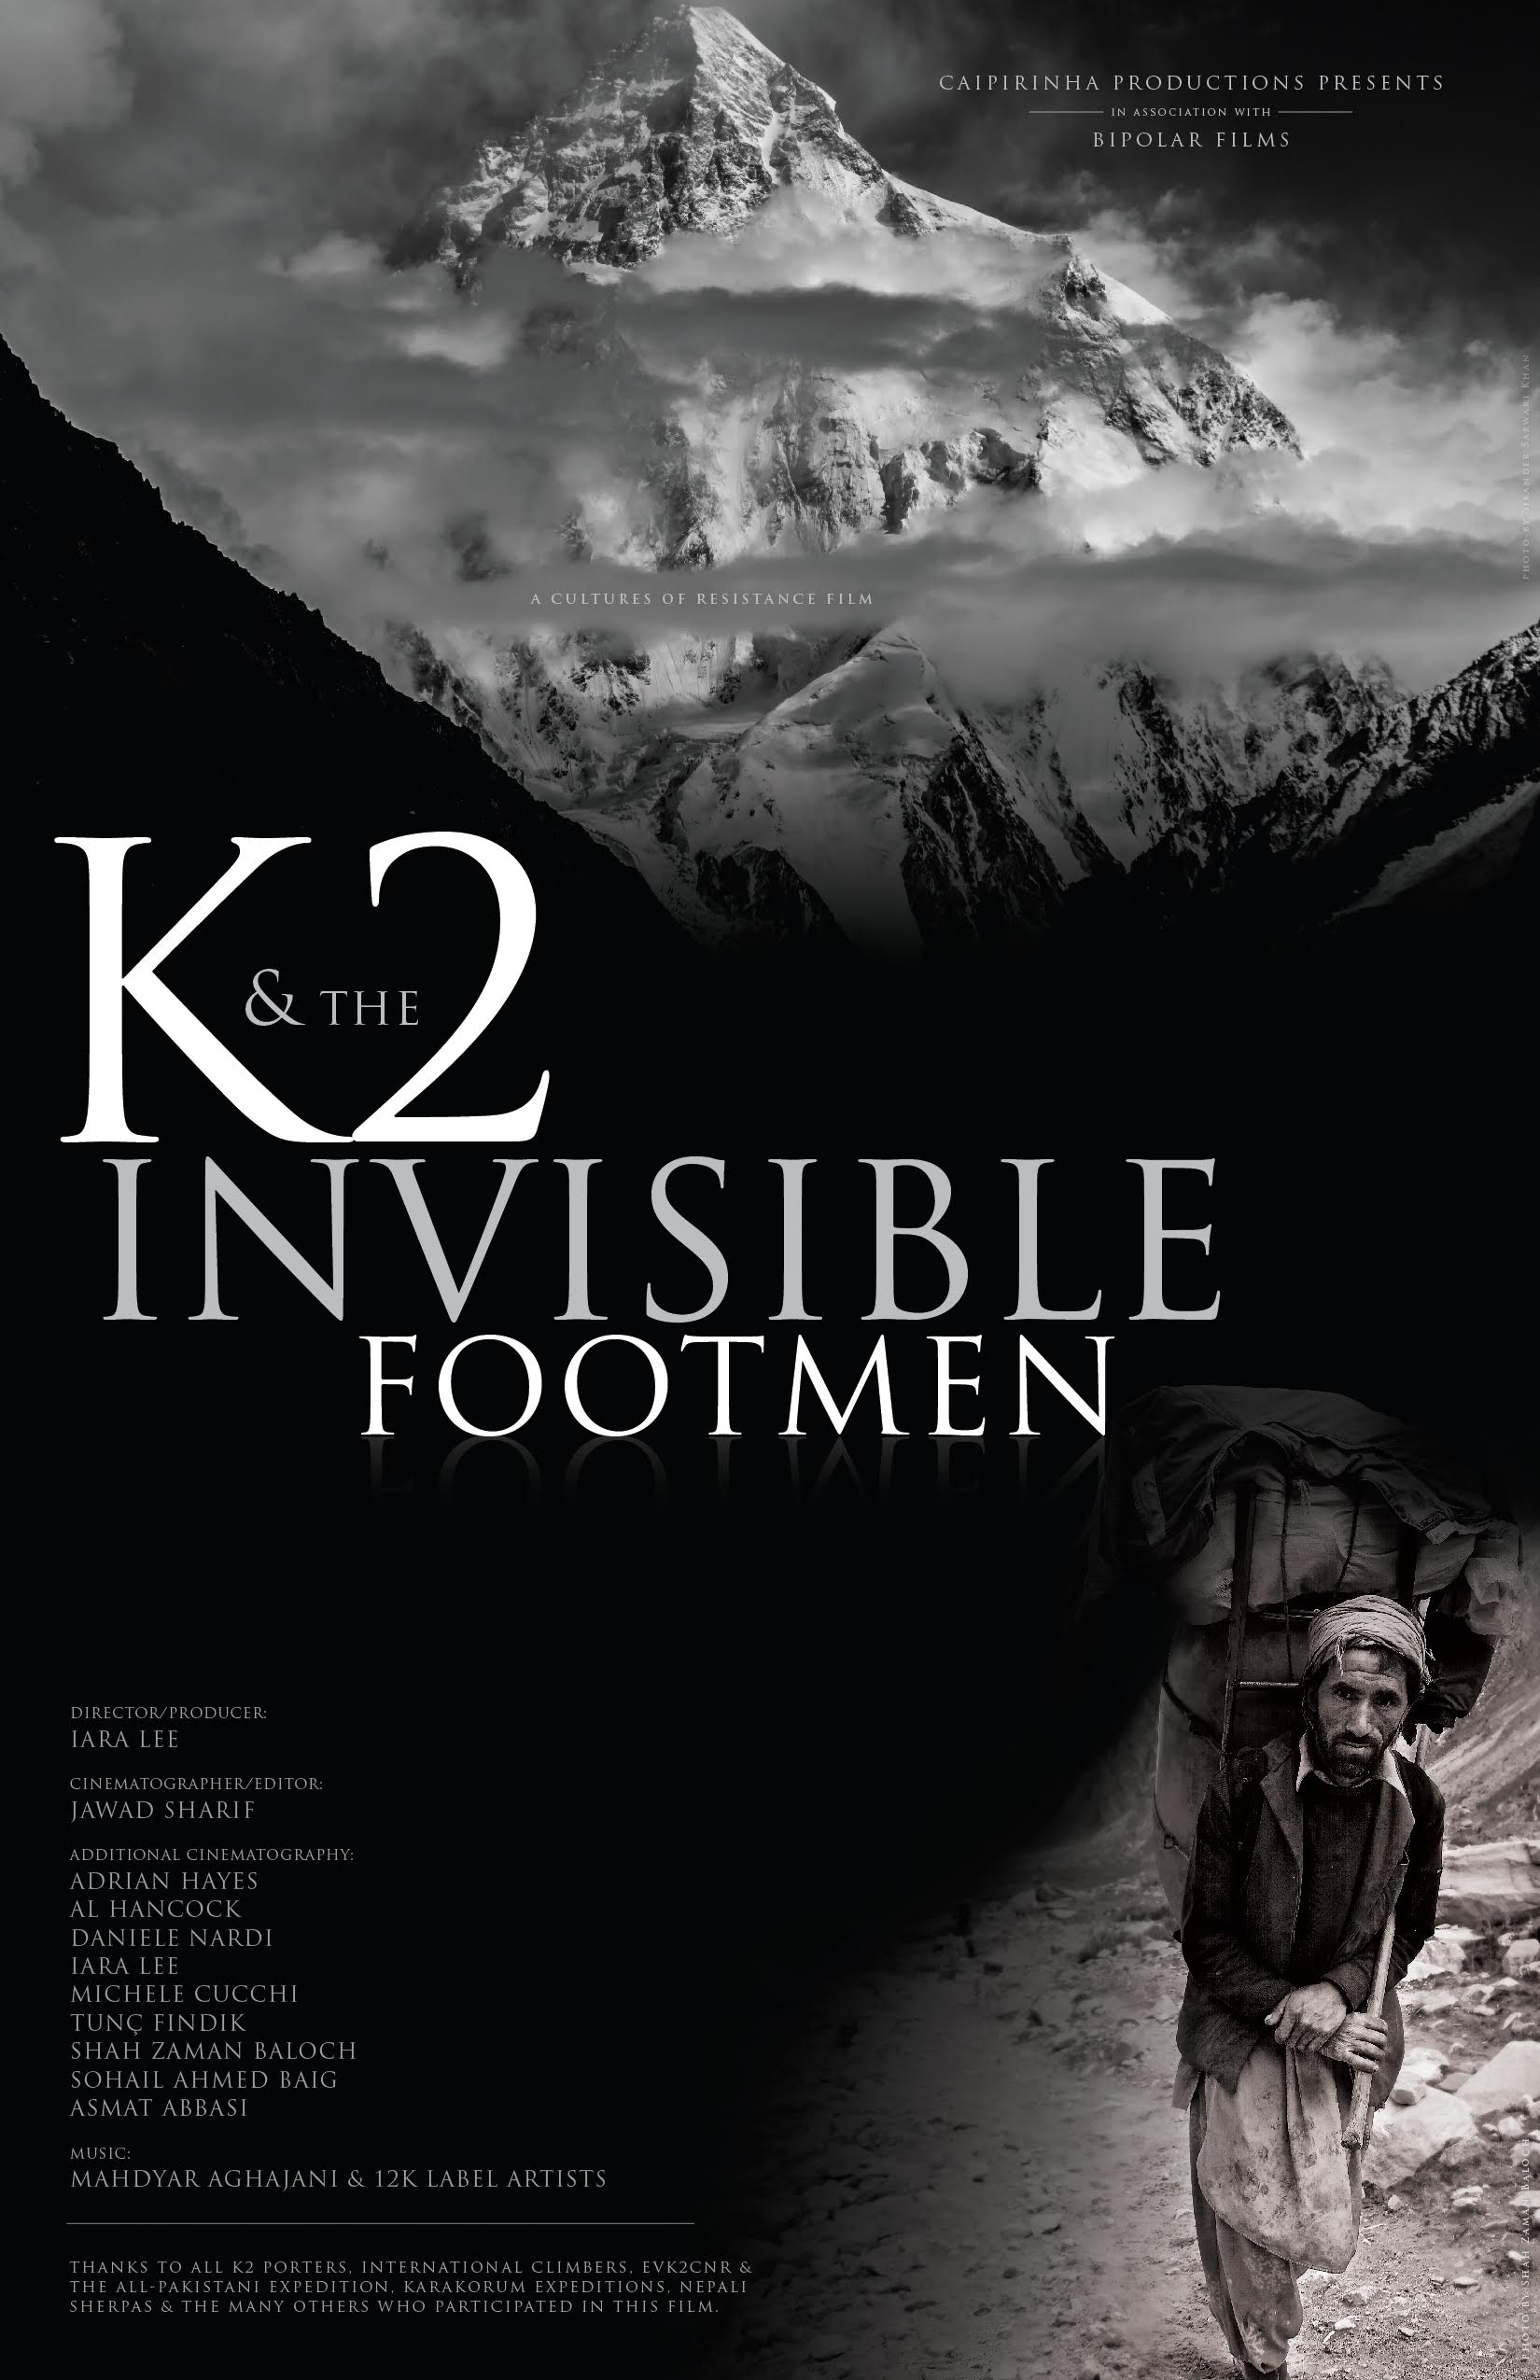 K2 and the Invisible Footmen: Screenings | Cultures of Resistance Films